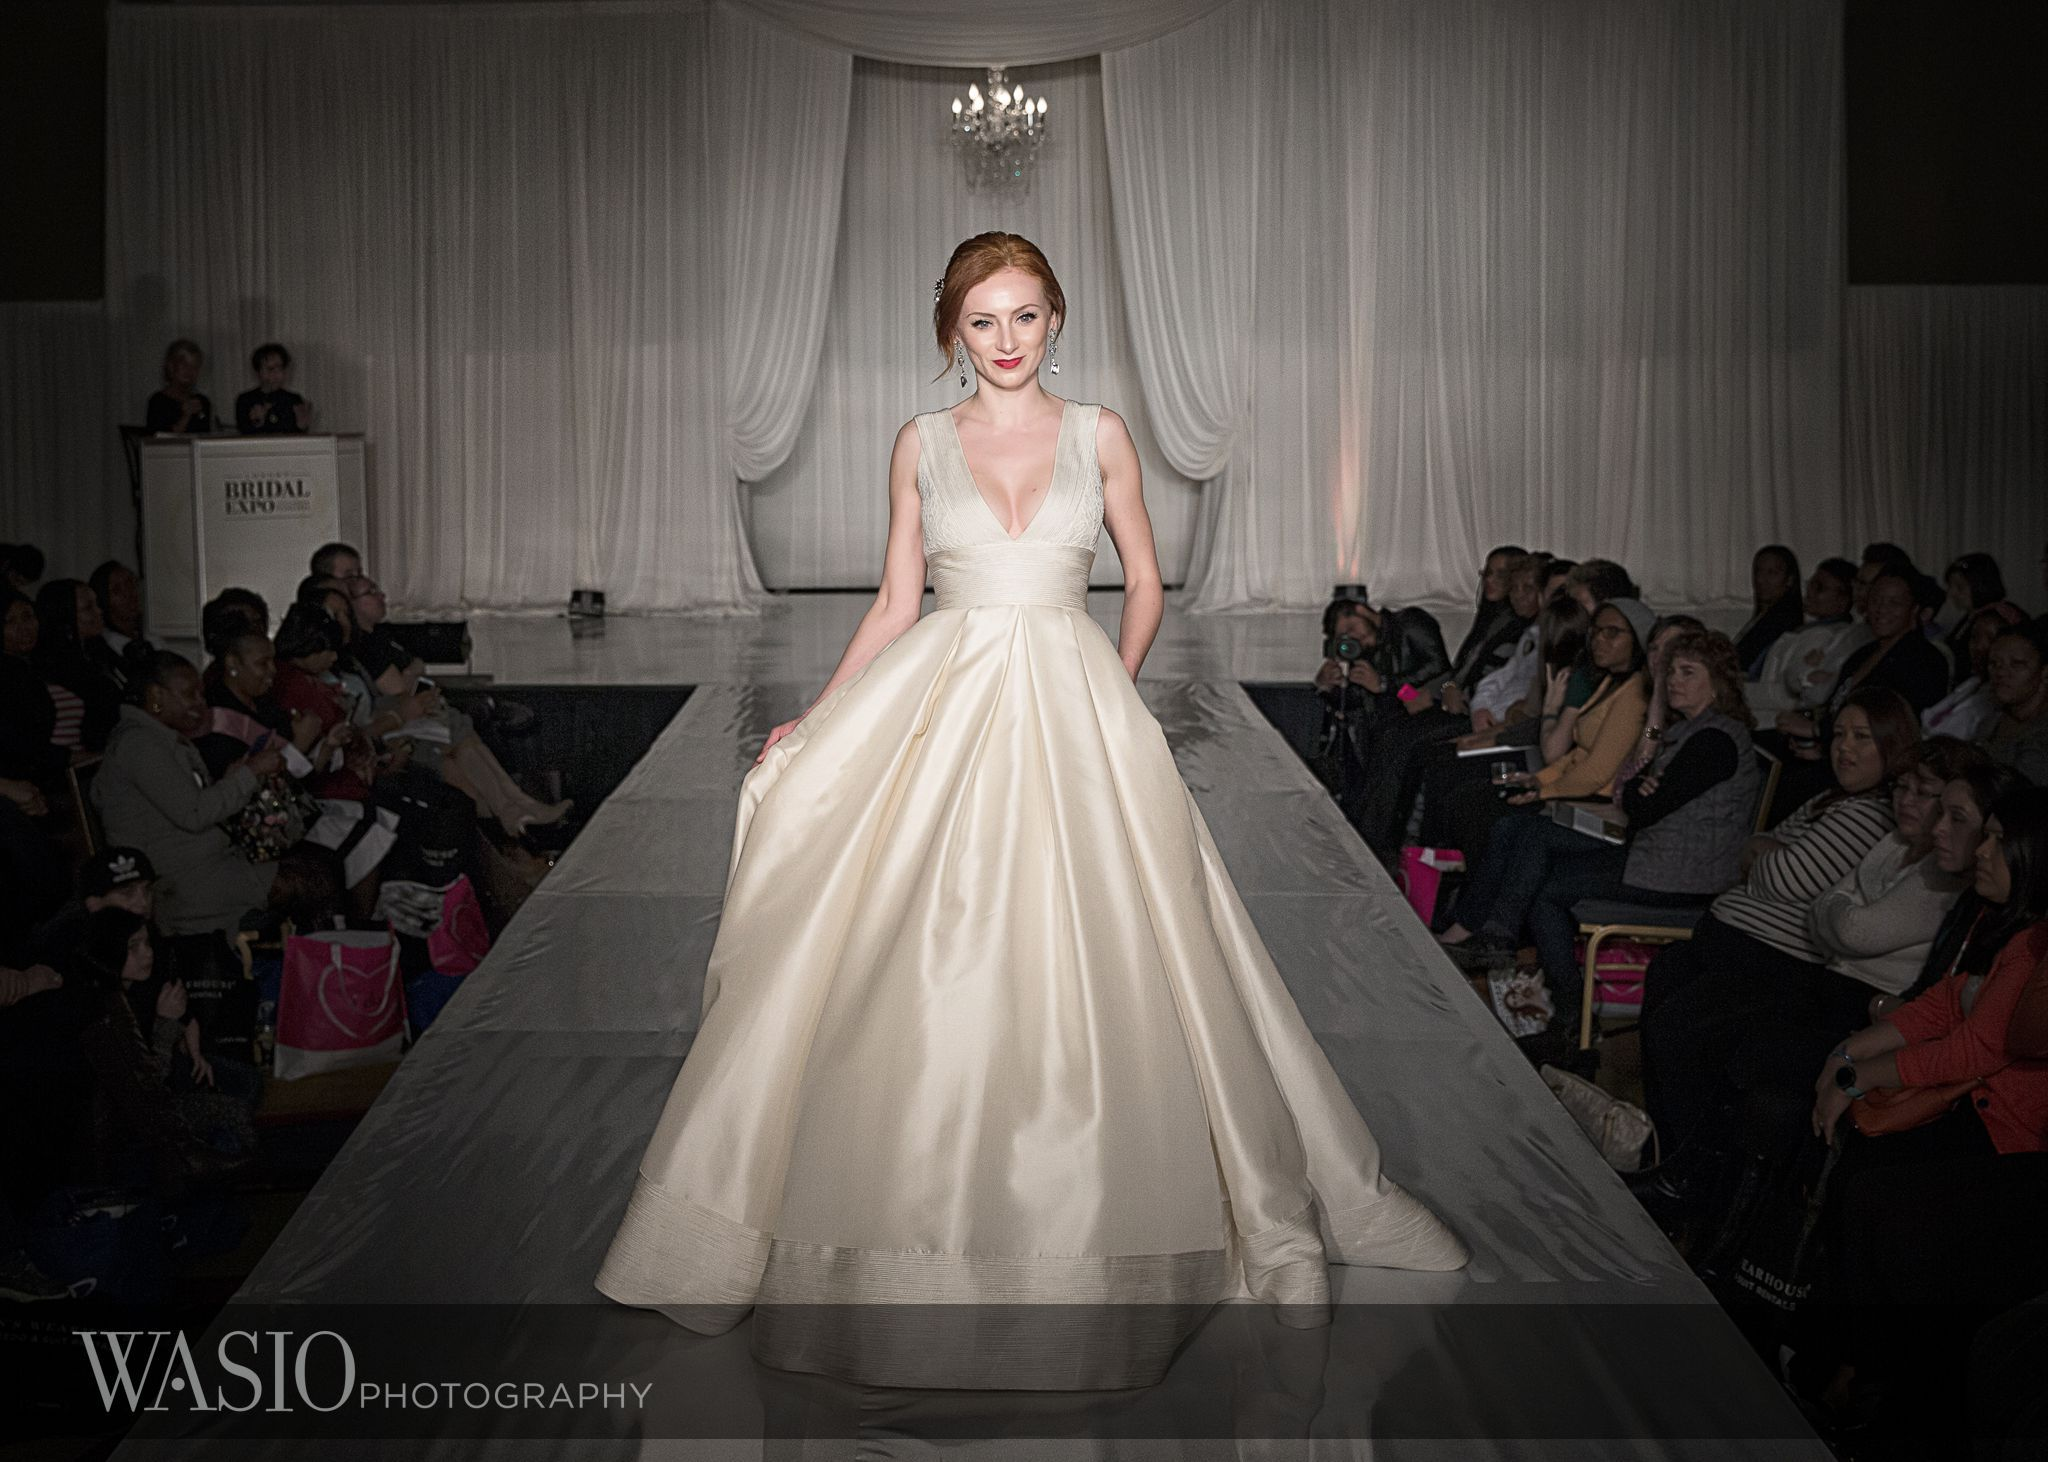 Spectacular Weddingdress From Chicago Luxury Bridal Expo Weddingexpo Bridalexpo Annebarge Weddingidea